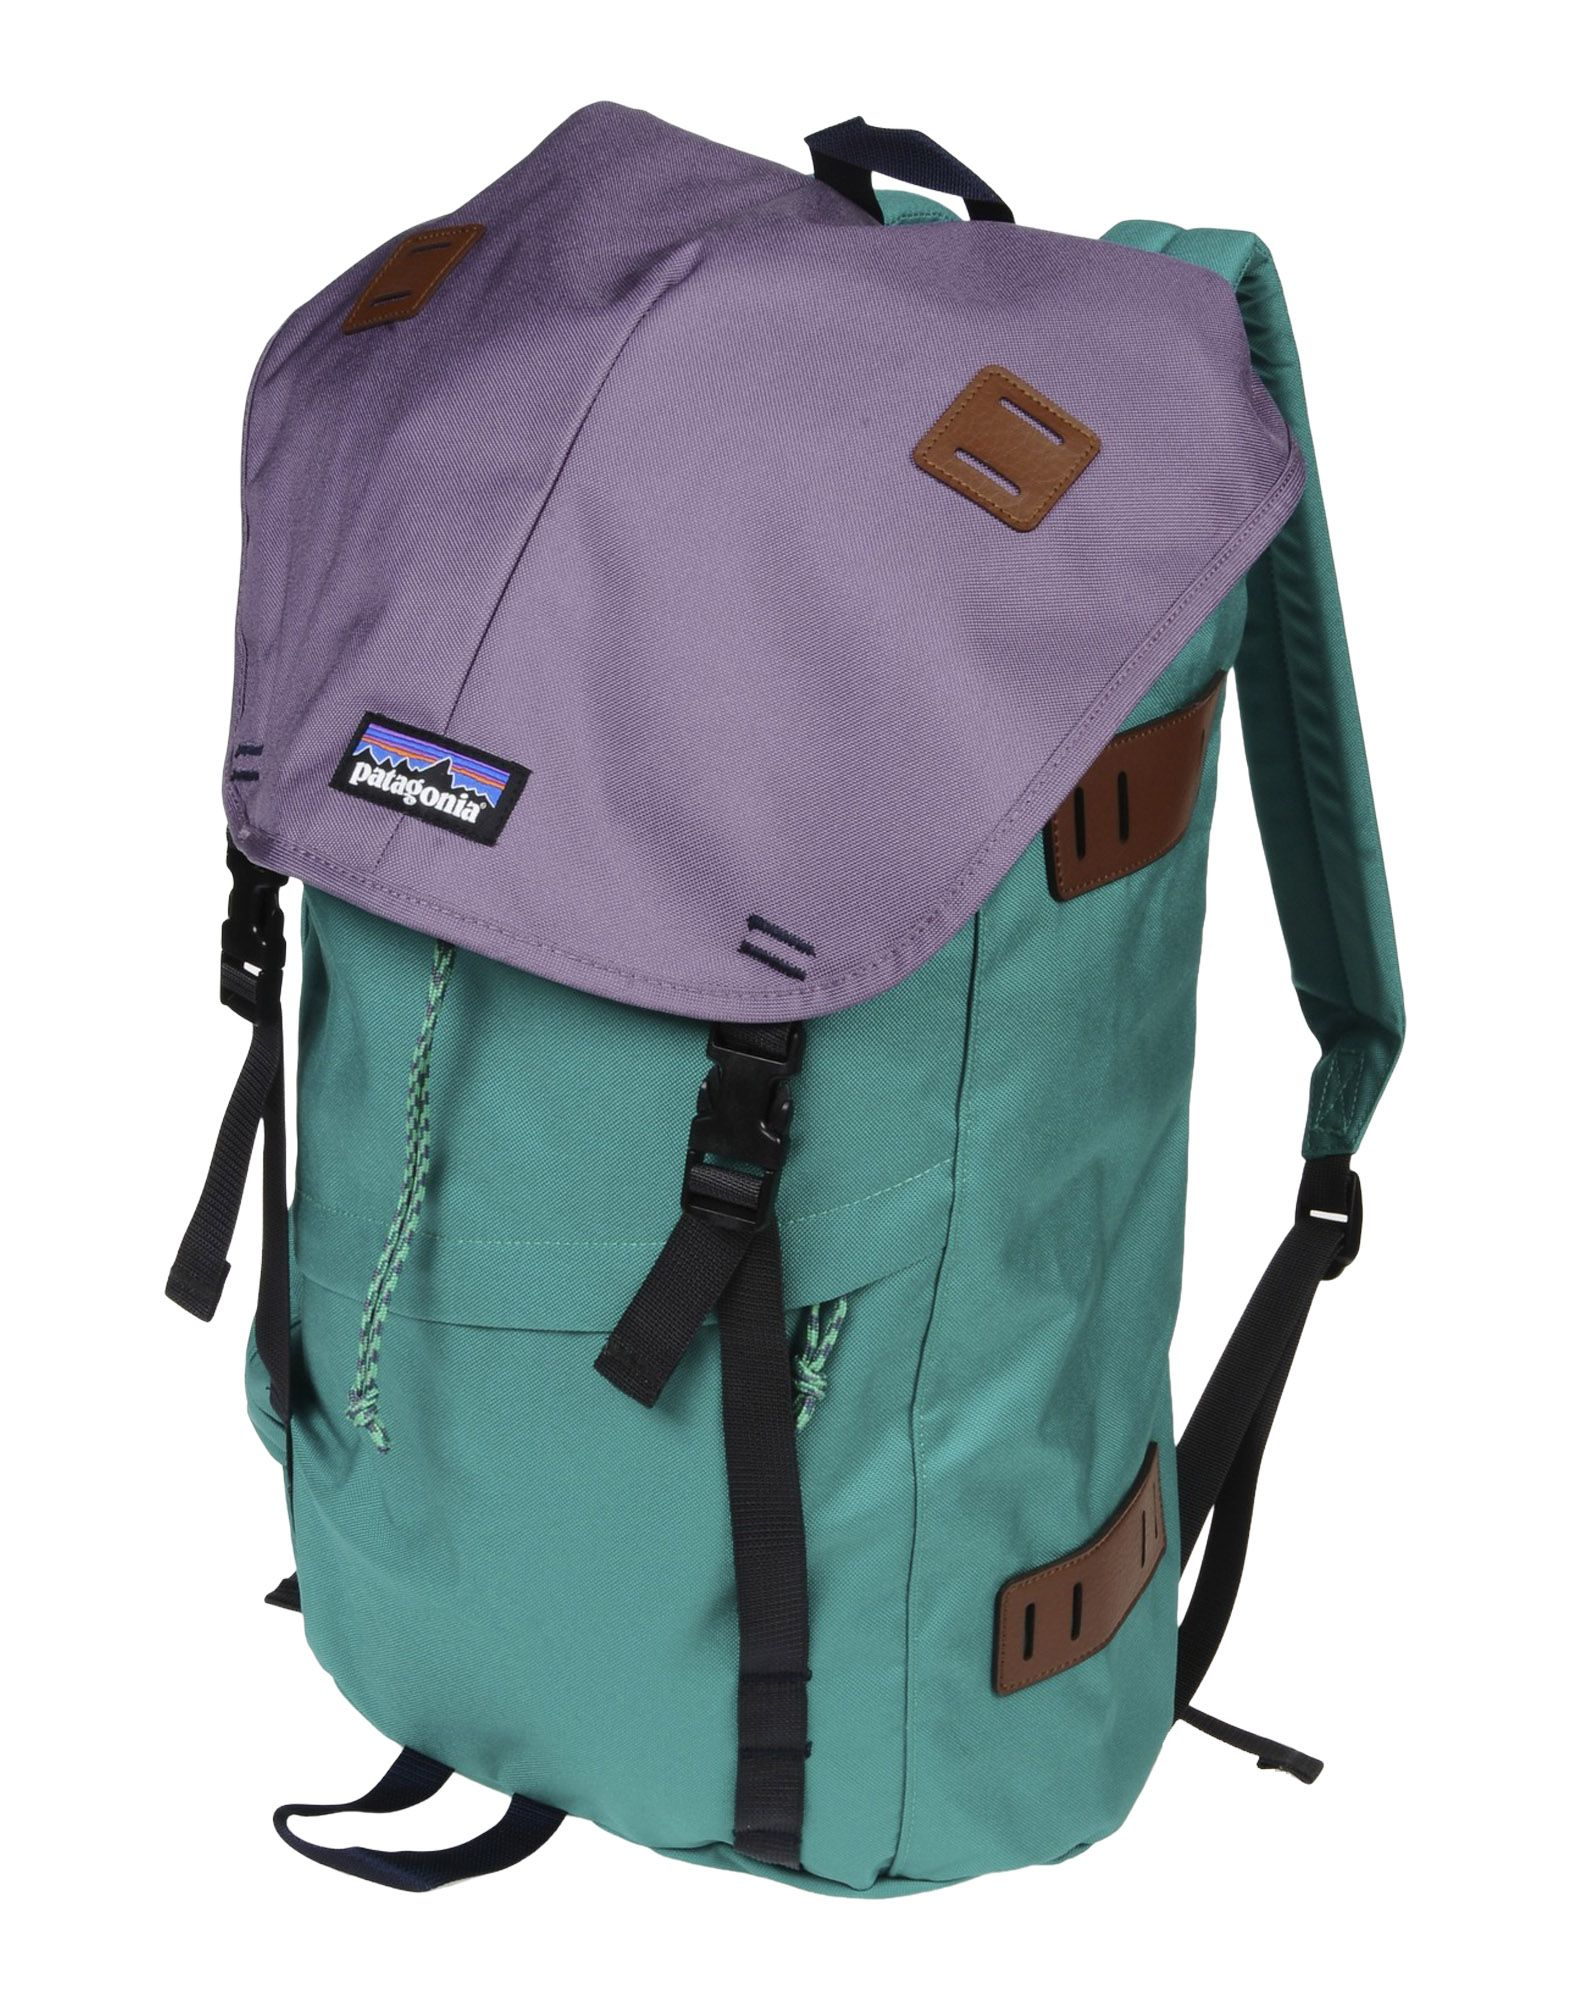 View all accessories We have a fantastic range of stylish and practical bags available including backpacks, rucksacks, daypacks, washbags, Duffle bags, Gym bags, Messenger bags and much more at amazingly low prices.